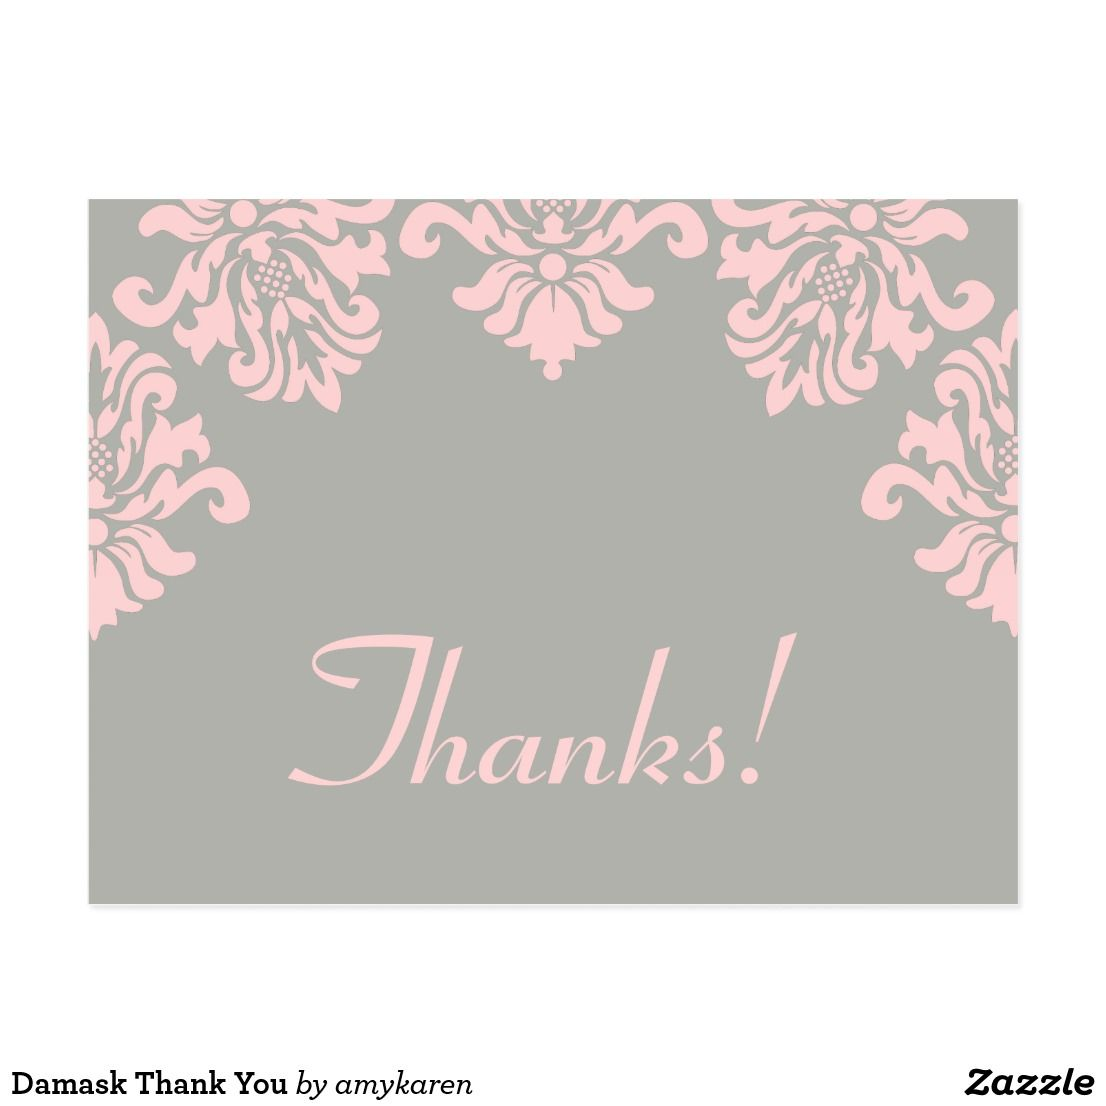 Wedding Thank You Etiquette No Gift: Damask Thank You Postcard